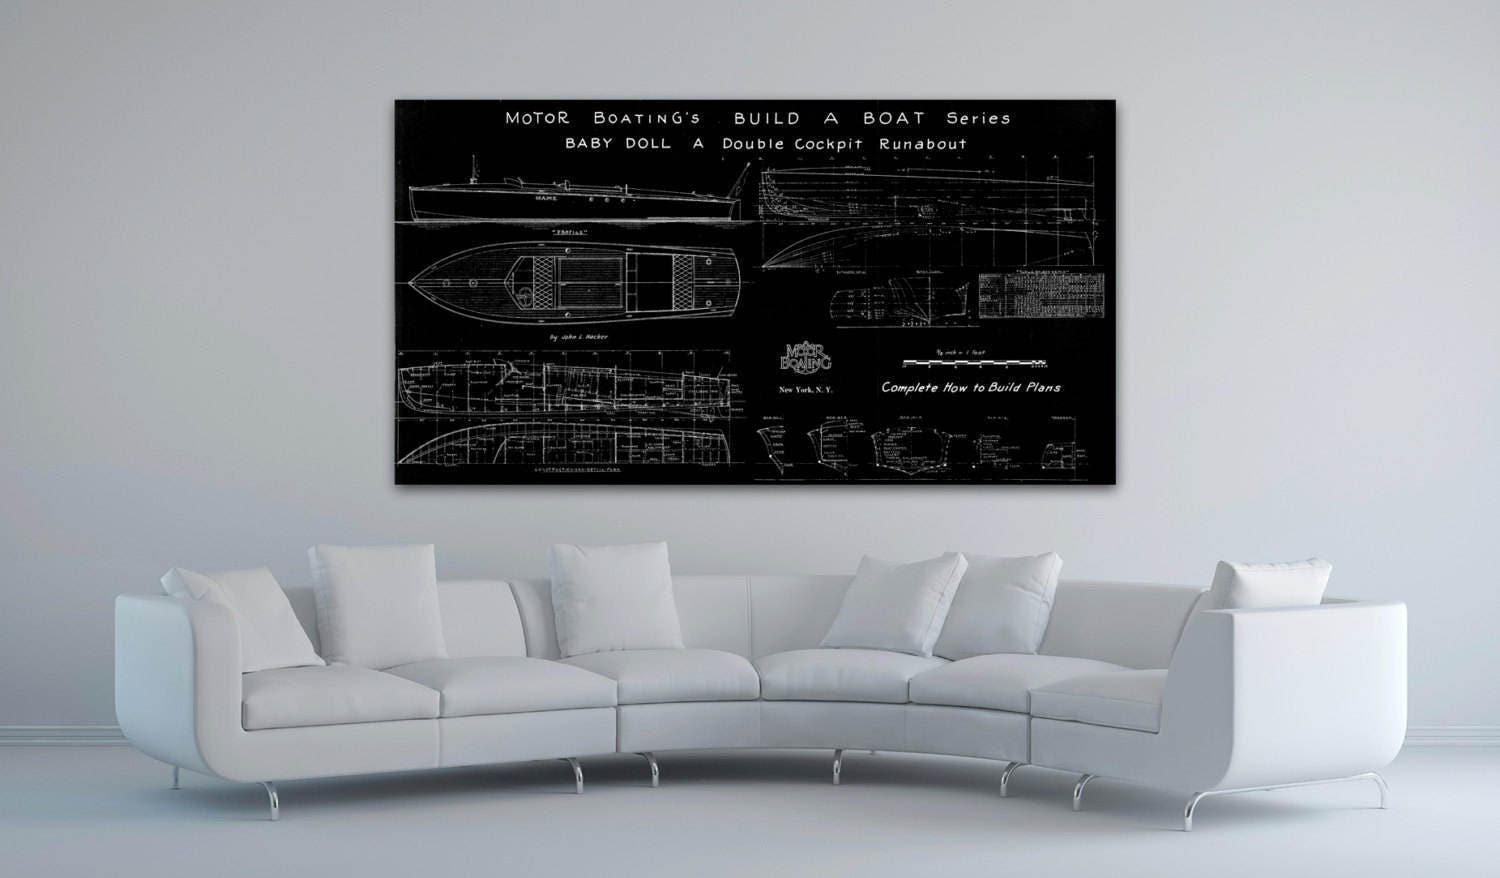 Print of vintage baby doll boat blueprint from motor boatings build print of vintage baby doll boat blueprint from motor boatings build a boat series on your choice of matte paper photo paper or canvas malvernweather Image collections